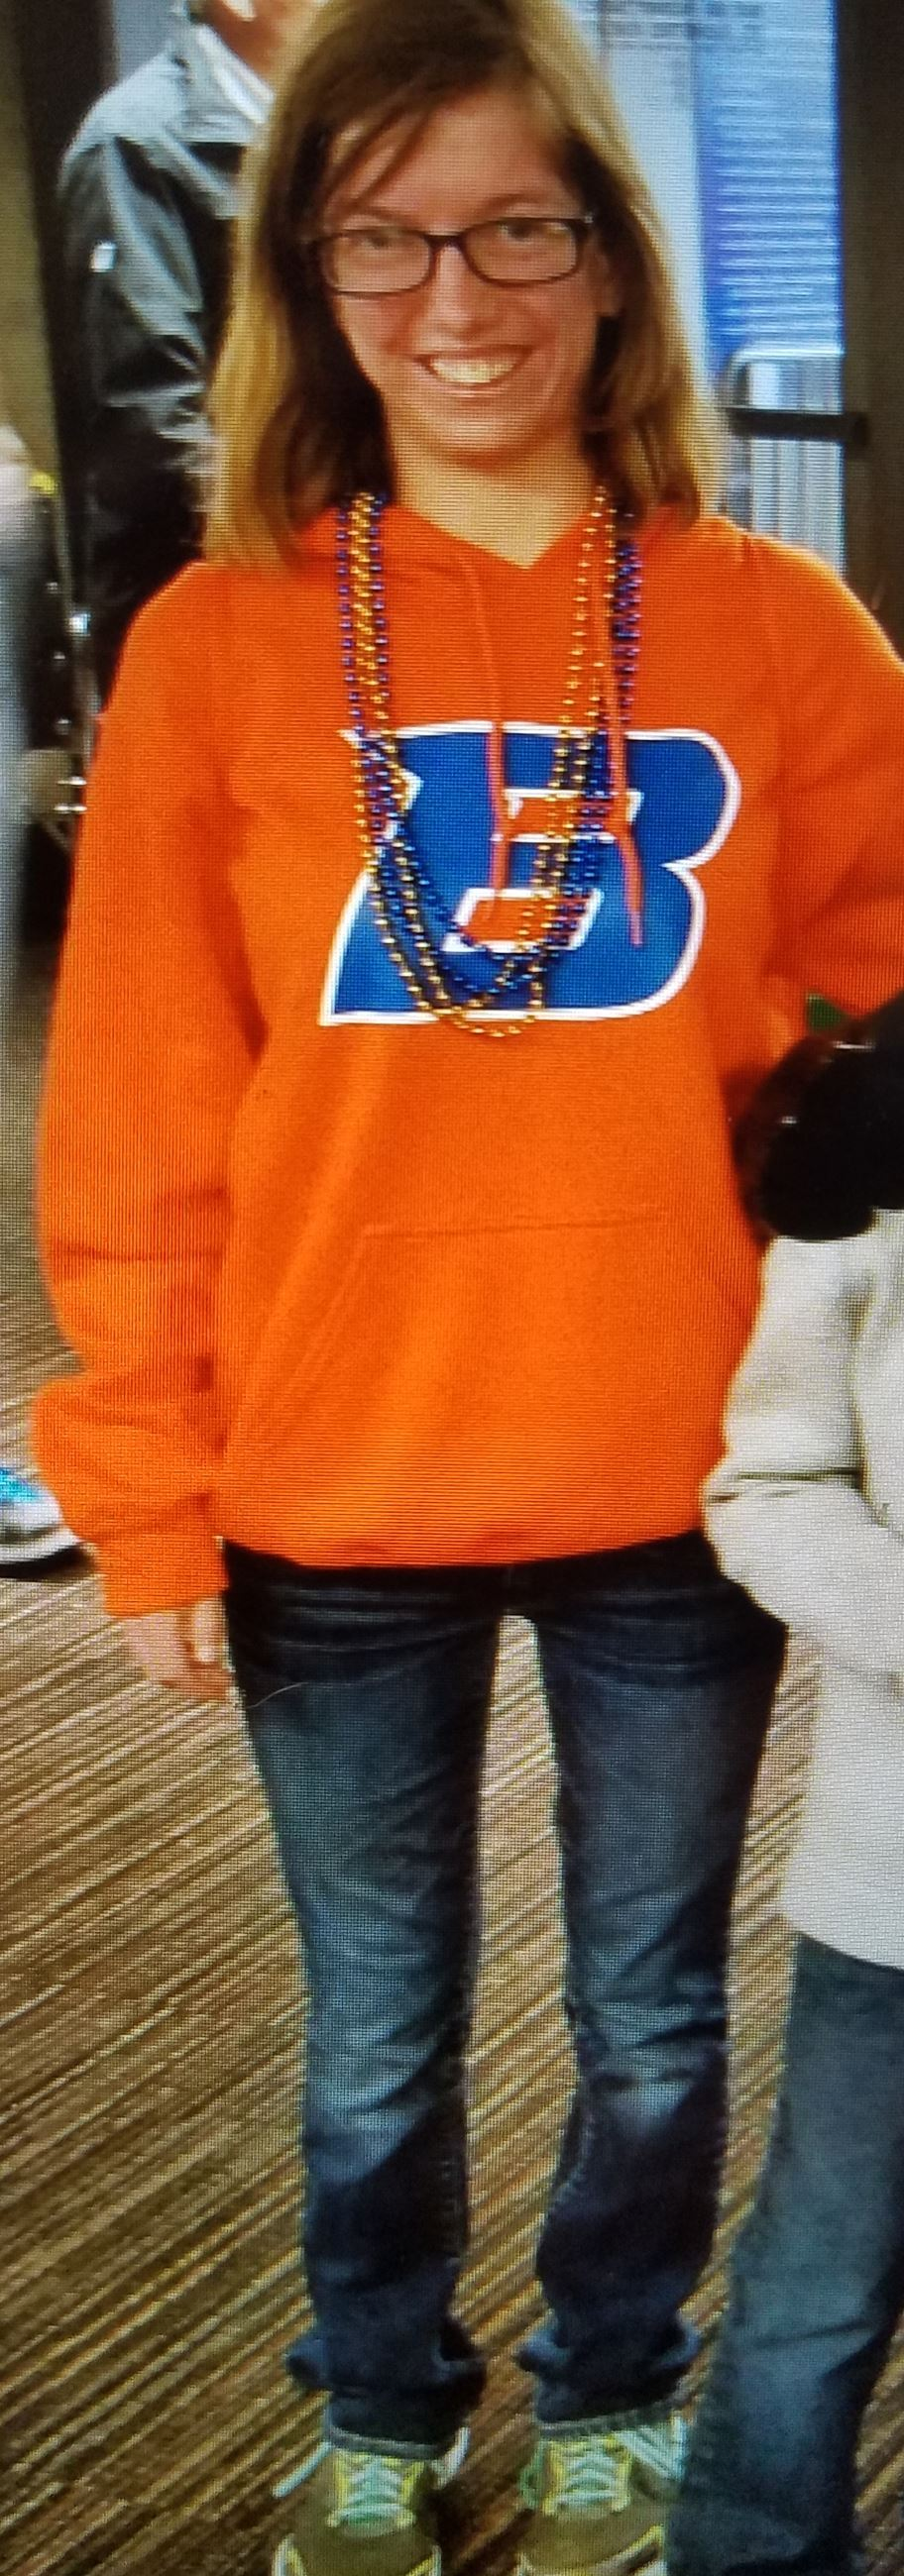 Photo of Heather N. Henderson wearing Boise State Sweatshirt